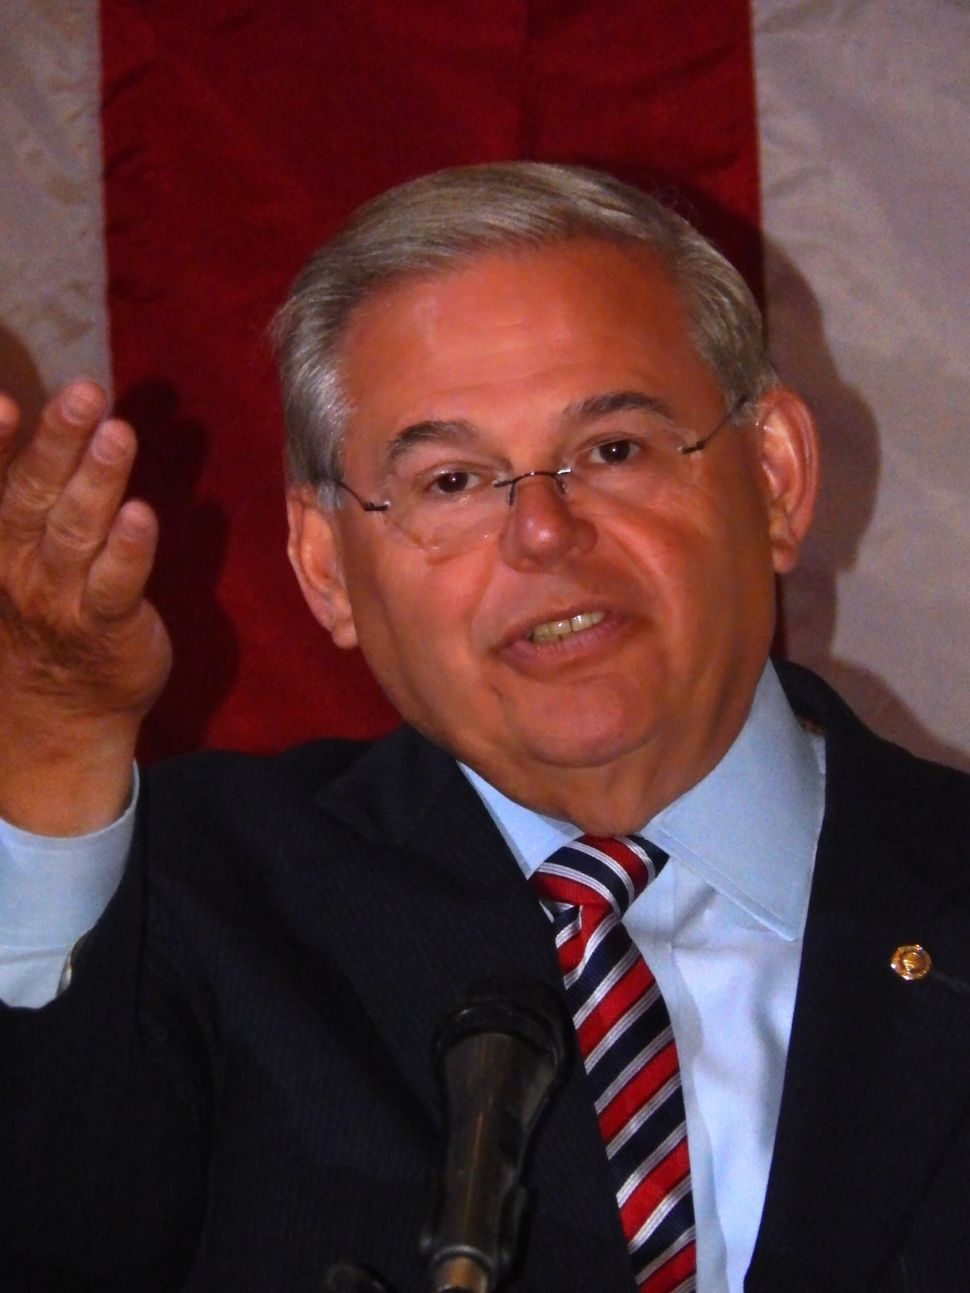 Menendez stuns Bergen crowd with declaration that he'll be voting for Tedesco